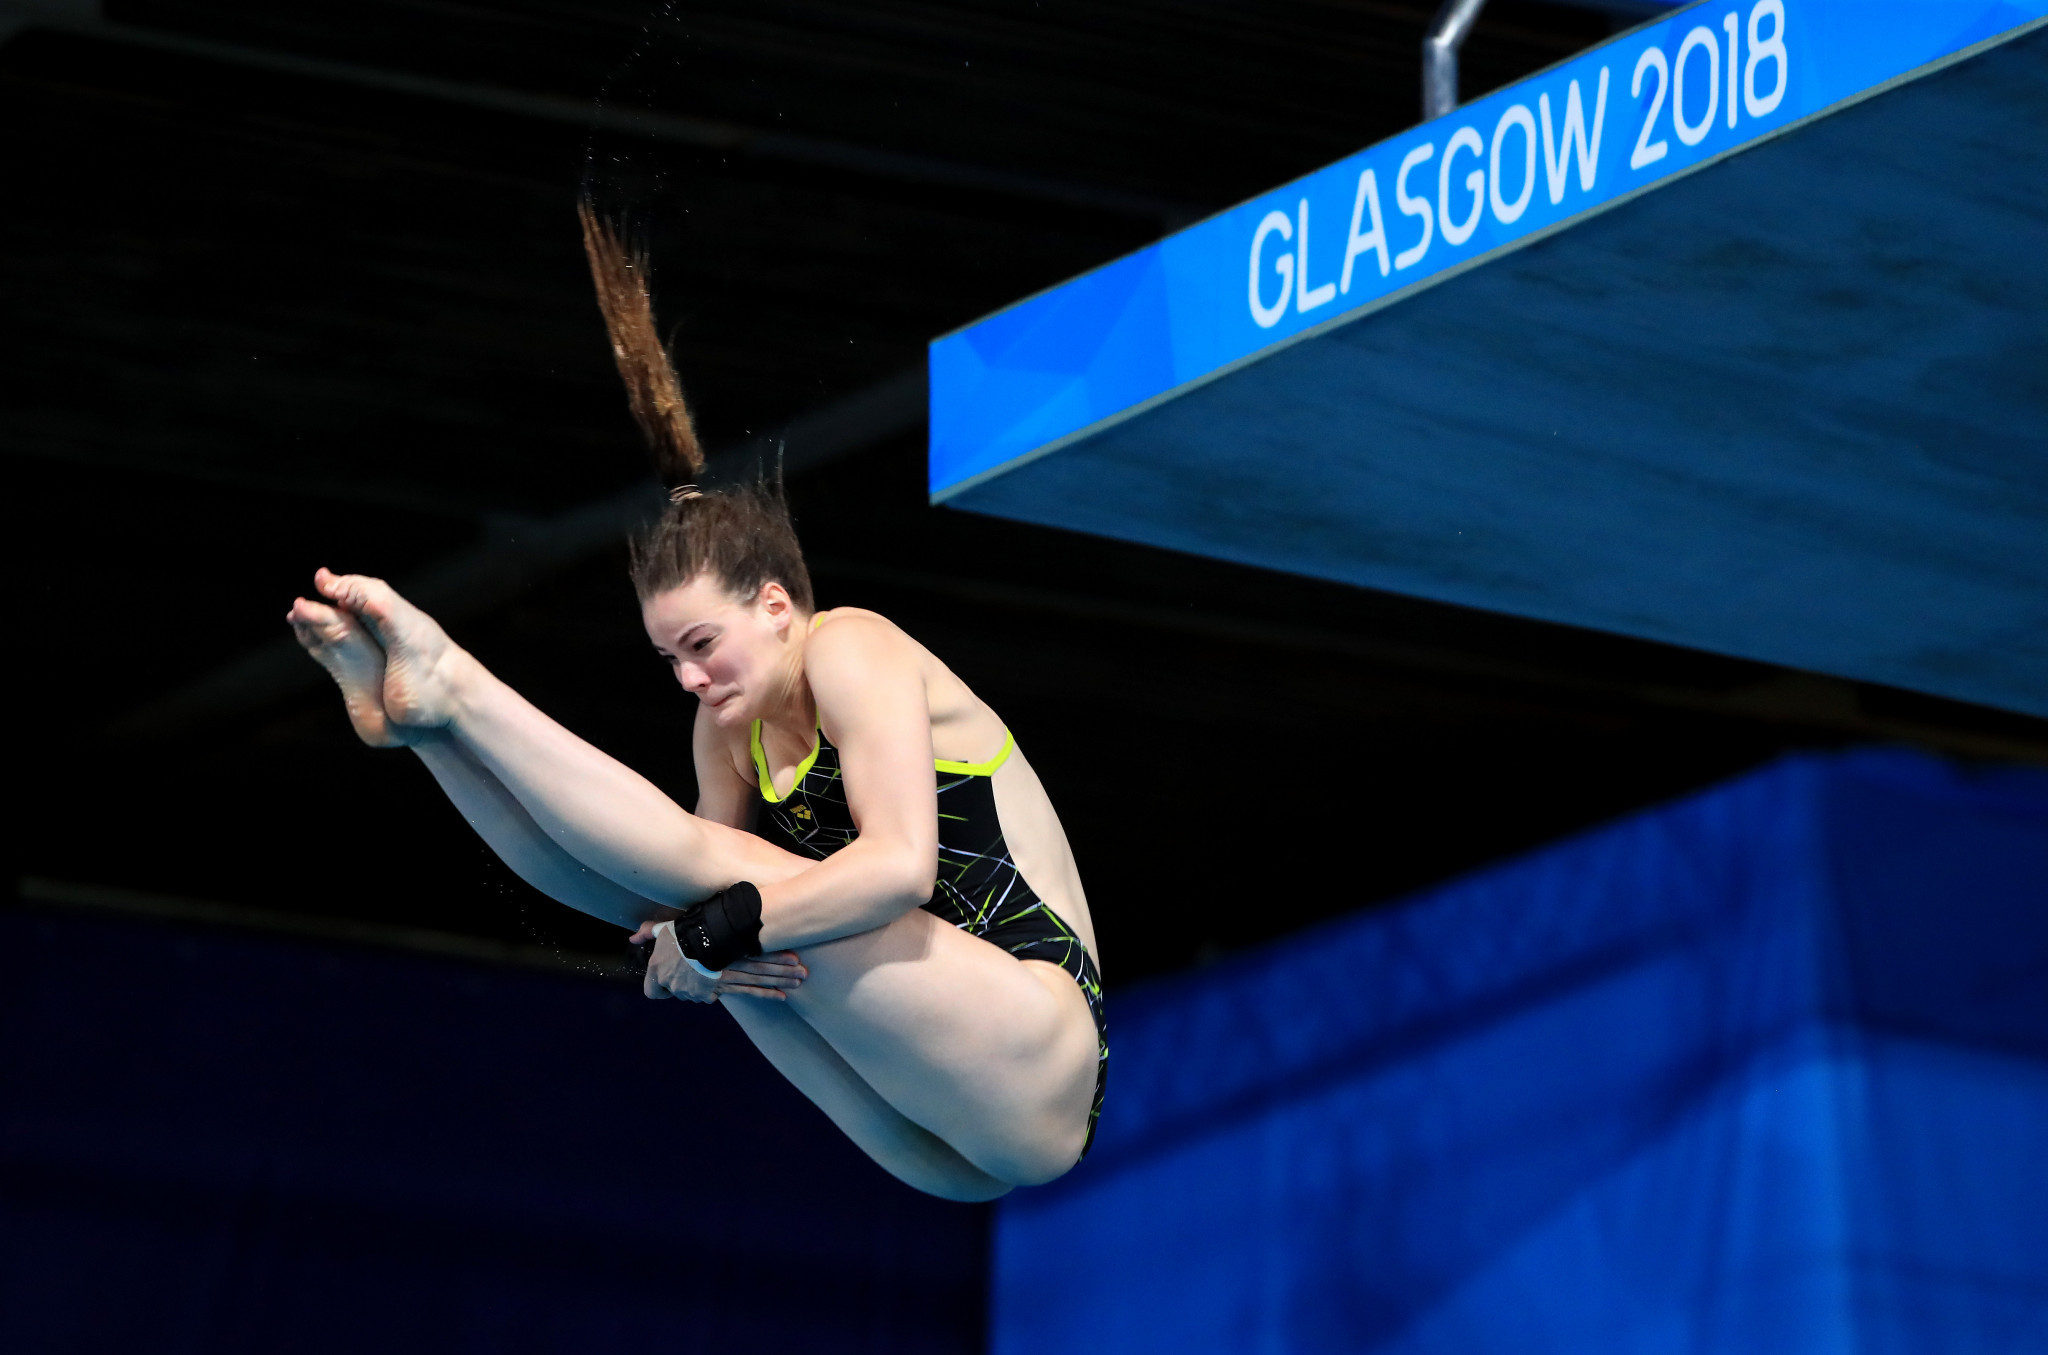 Elena Wassen earned a bronze medal at the Glasgow 2018 European Championships ©Getty Images